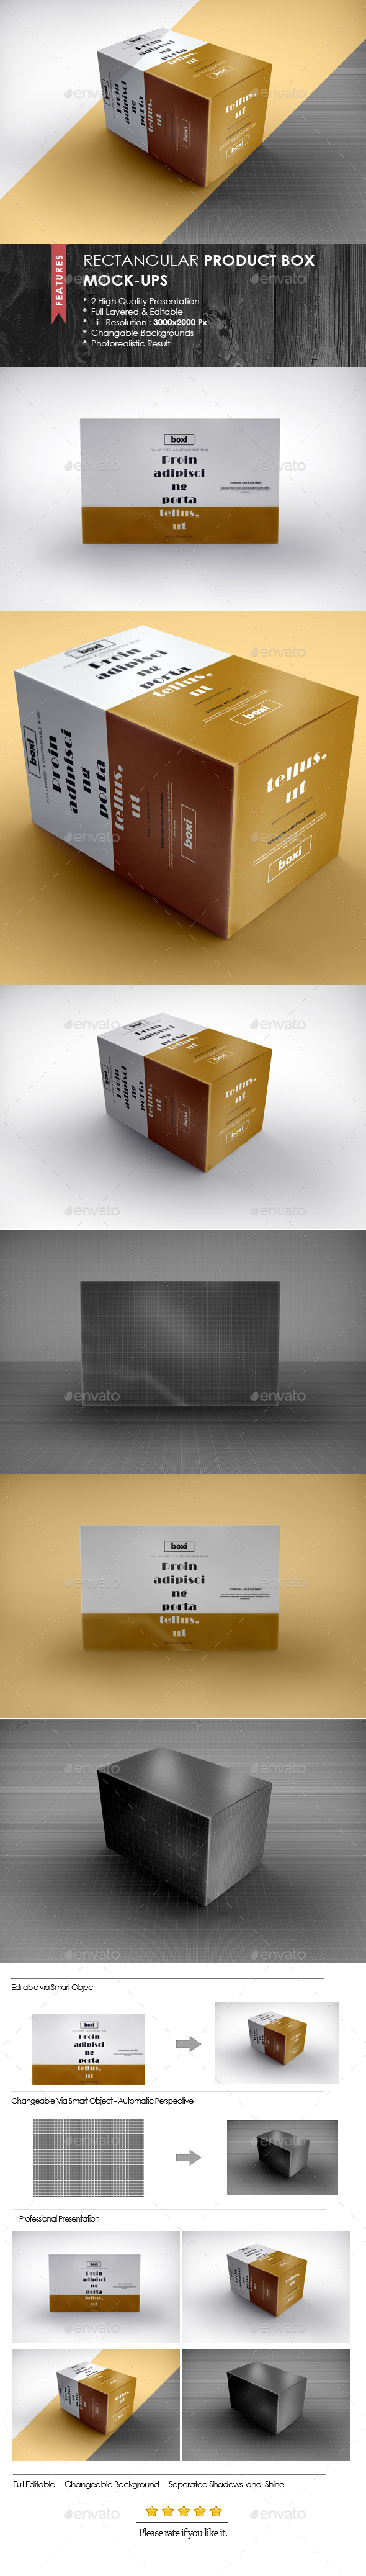 Rectangular Product Box Mock-Ups